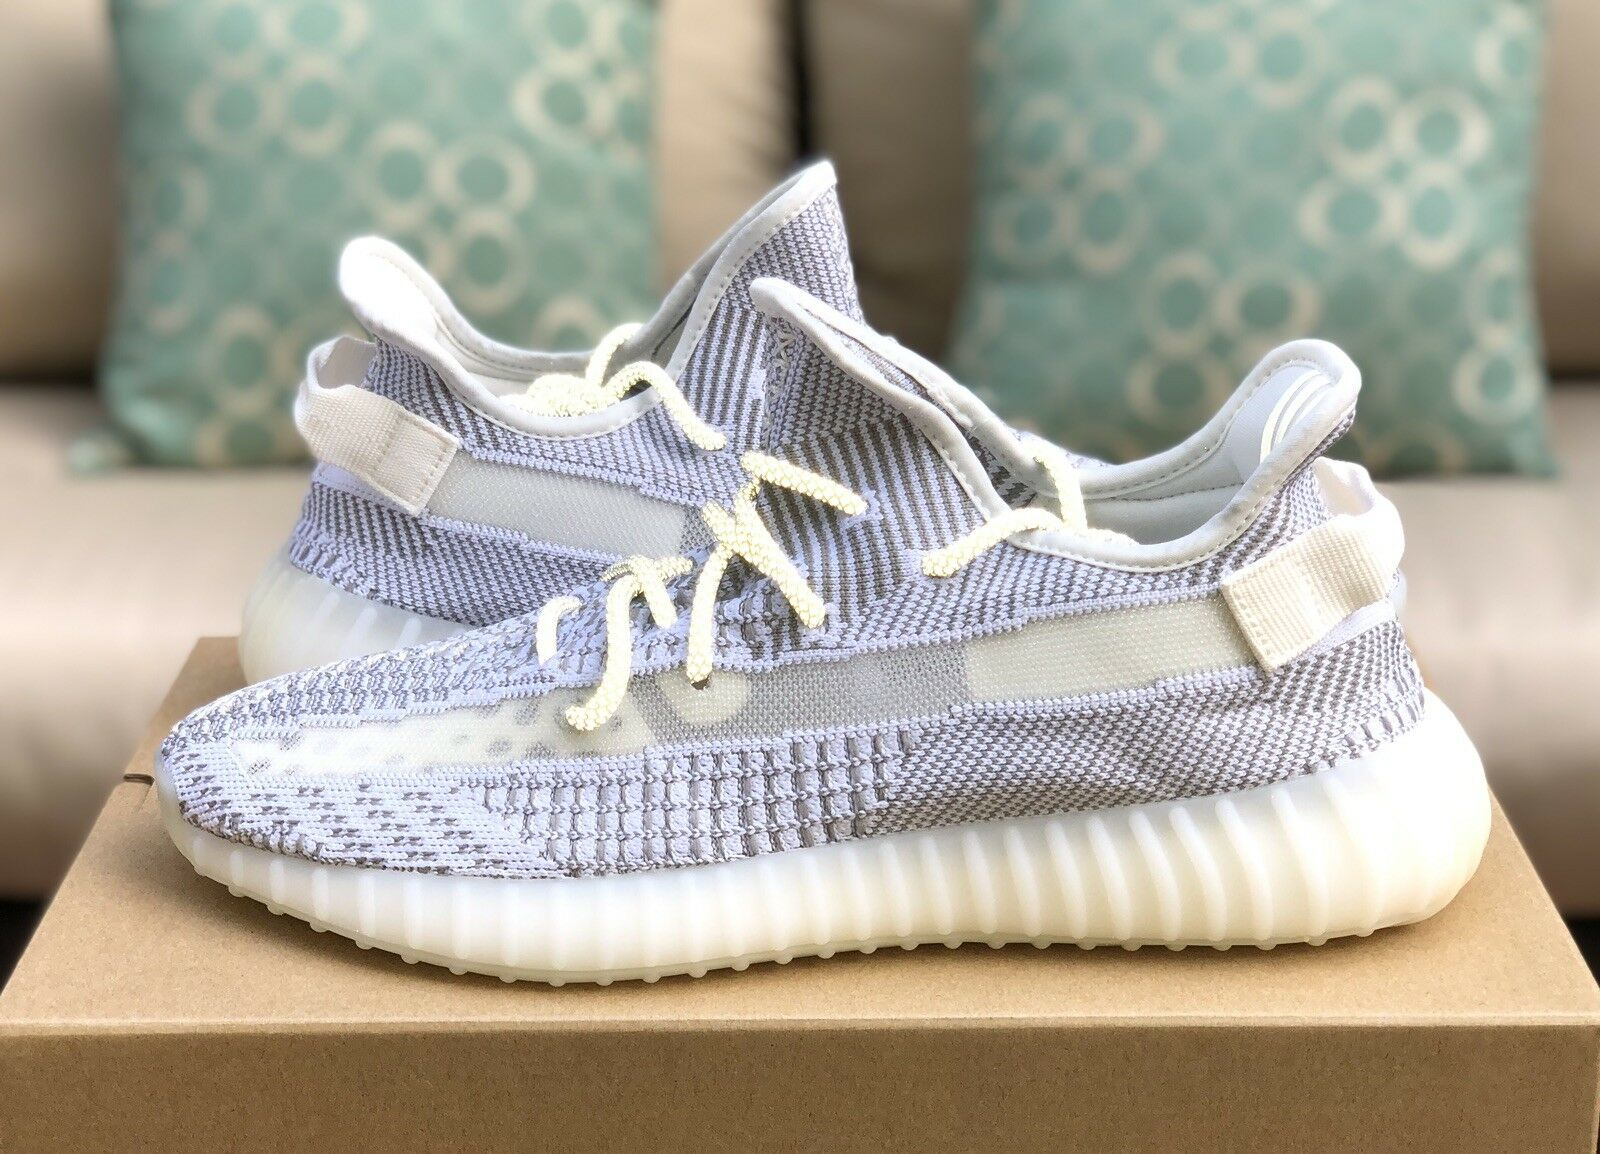 Adidas Yeezy Boost 350 V2 Static Non Reflective Size 11.5 Ships Same Day